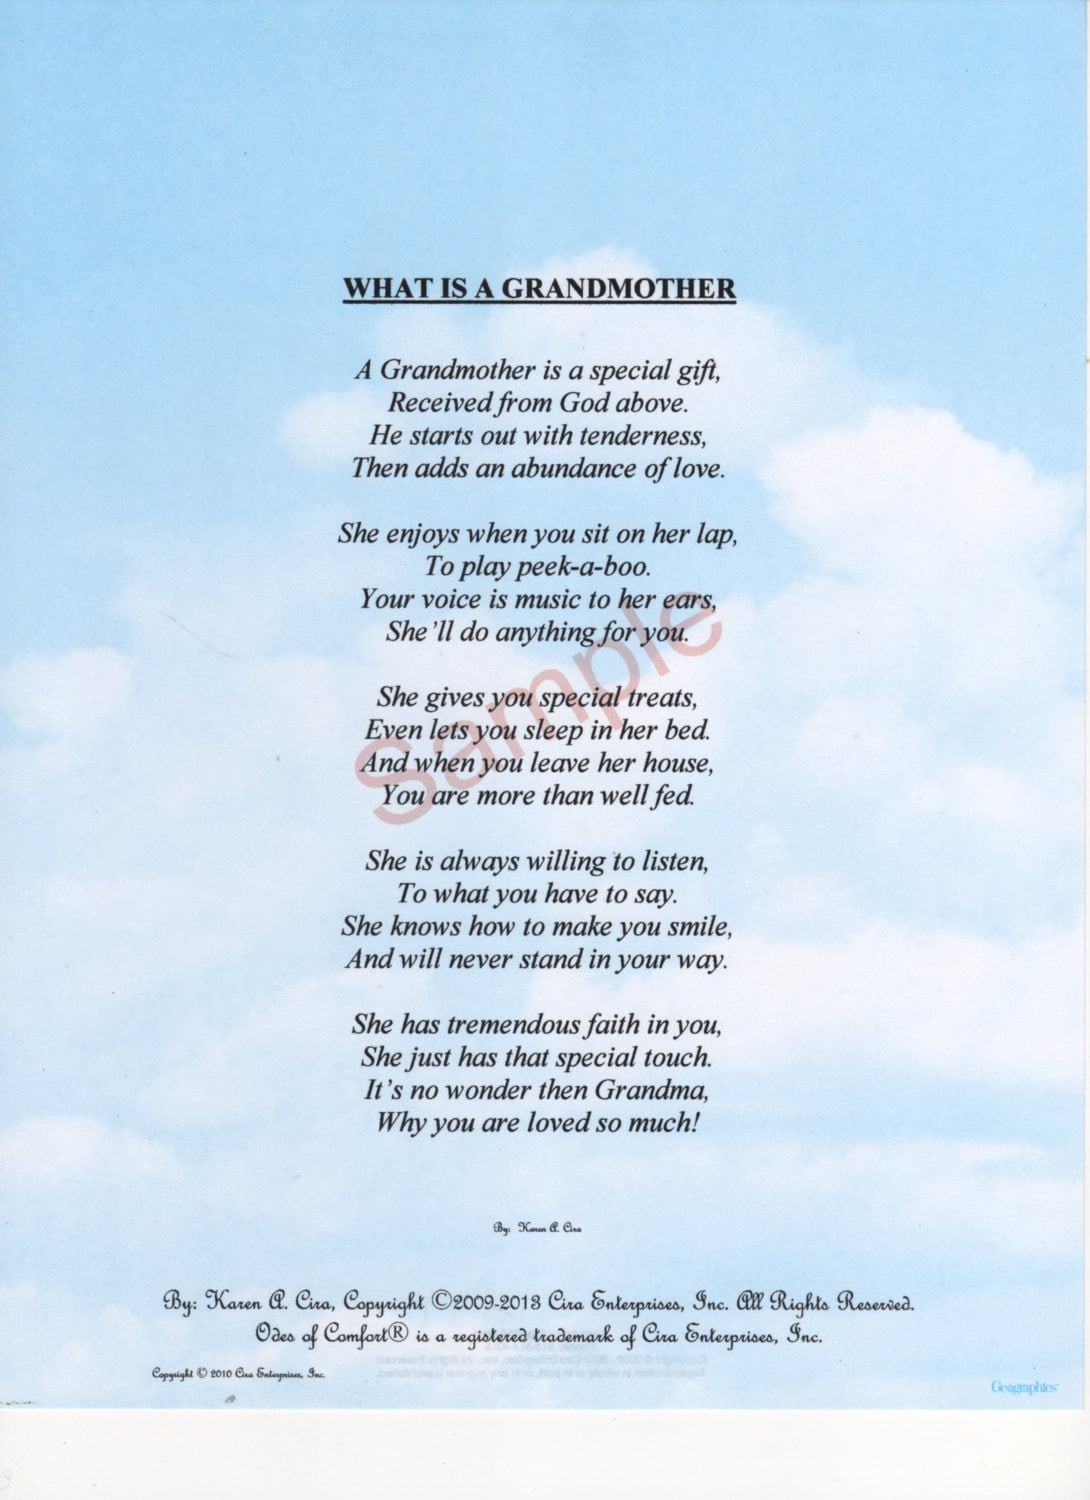 Five Stanza What Is A Grandmother Poem shown on